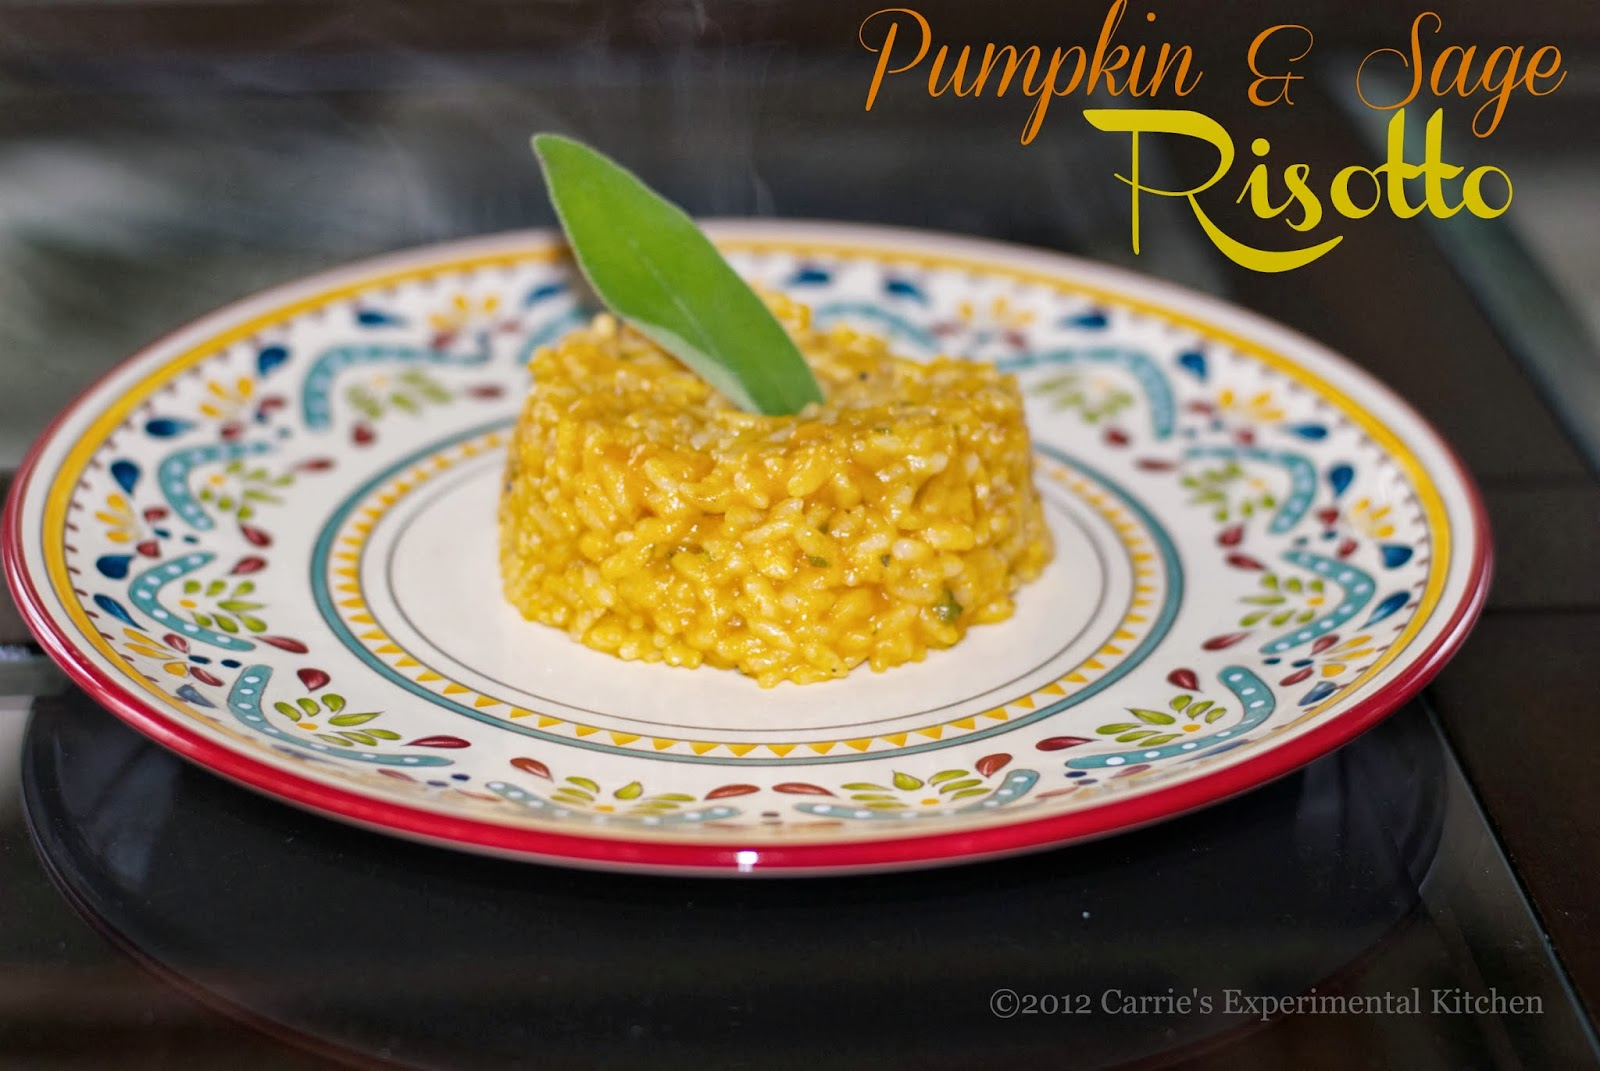 Pumpkin Risotto With Sage Roasted Chicken Recipes — Dishmaps